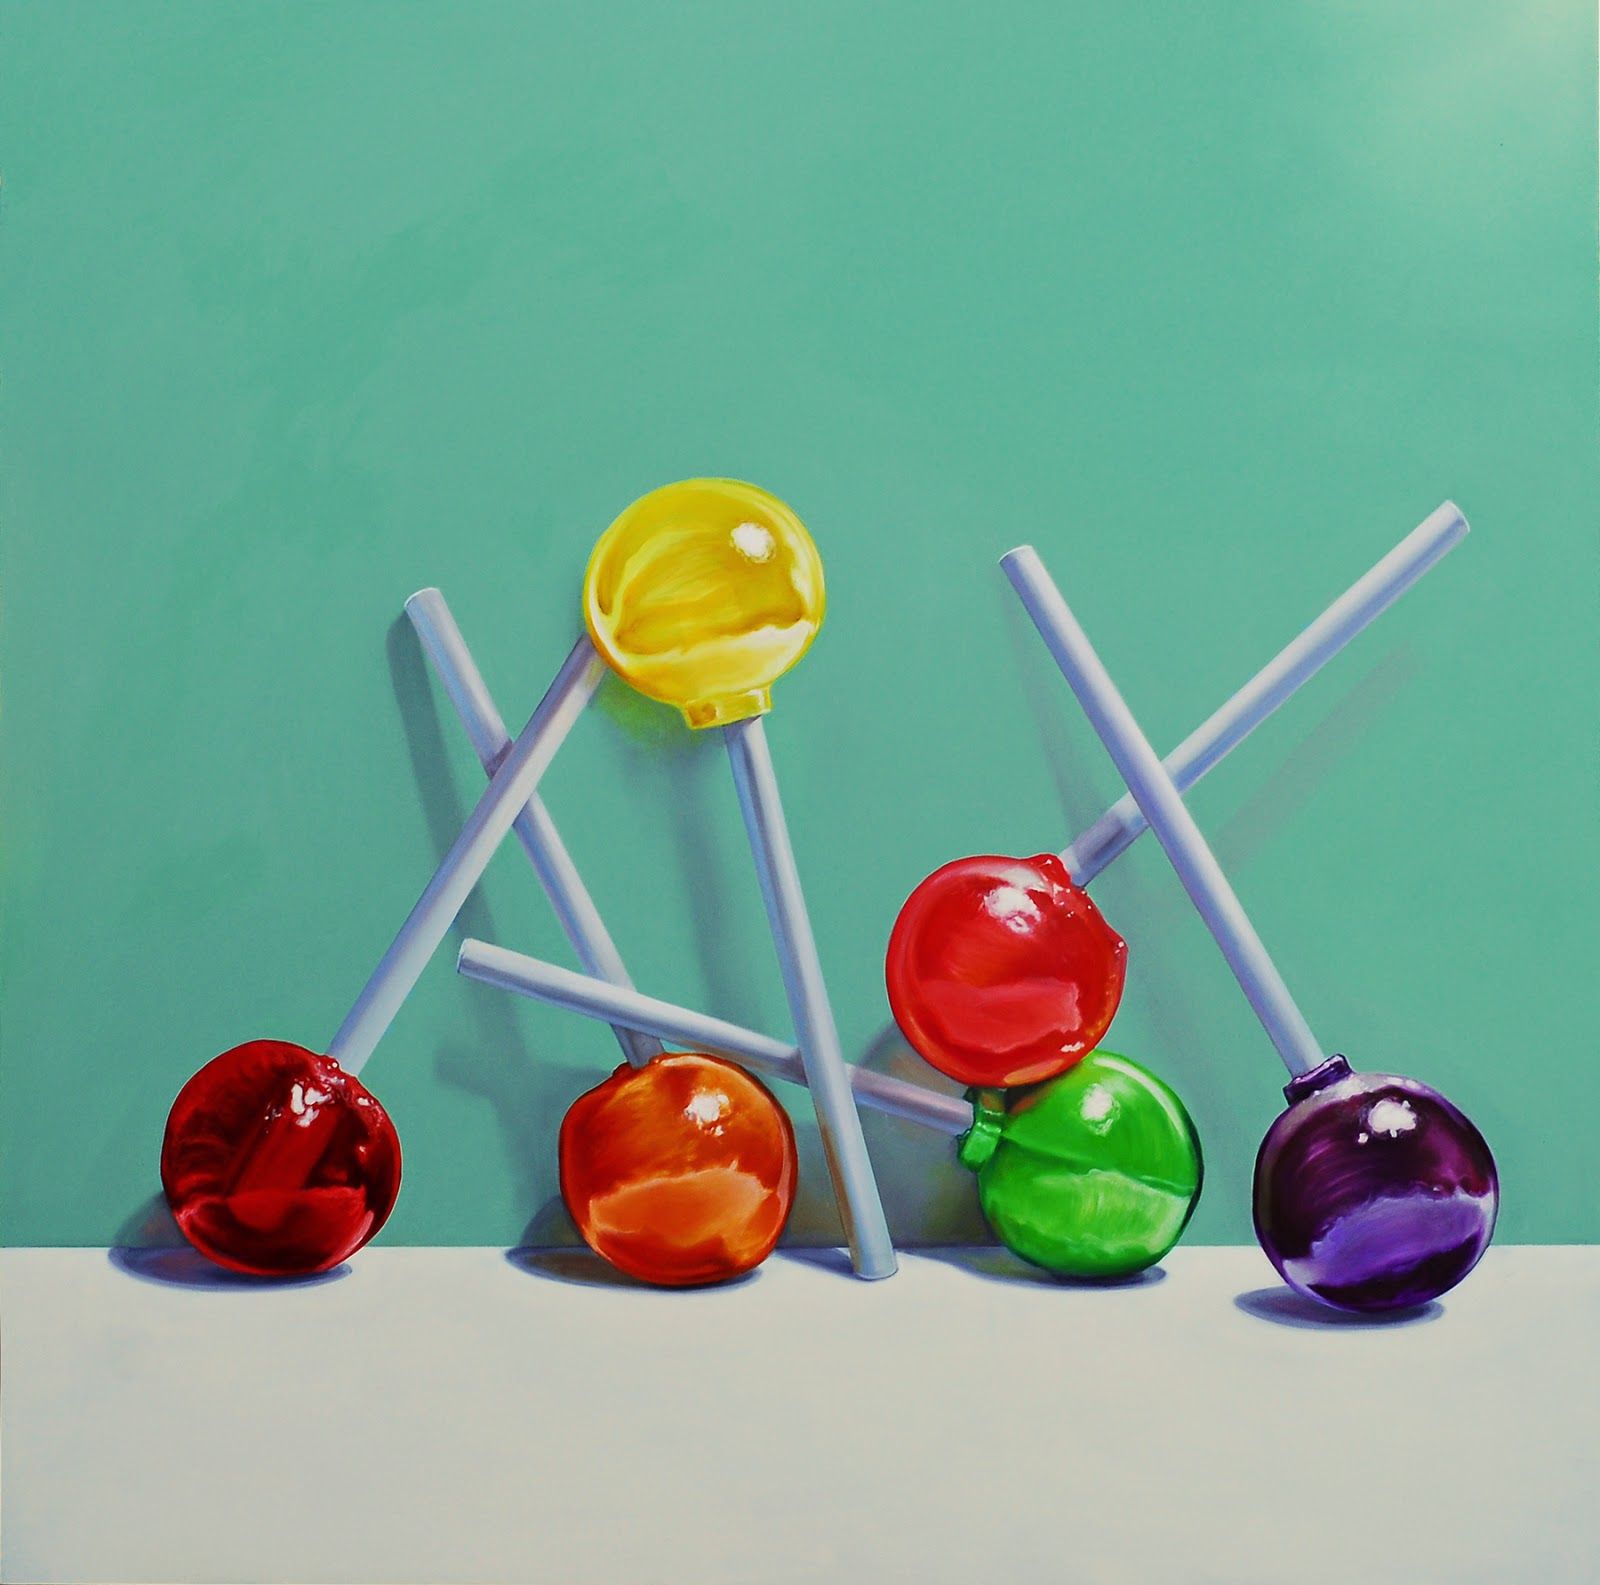 Lollipop painting, still life, original candy painting jeanne vadeboncoeur